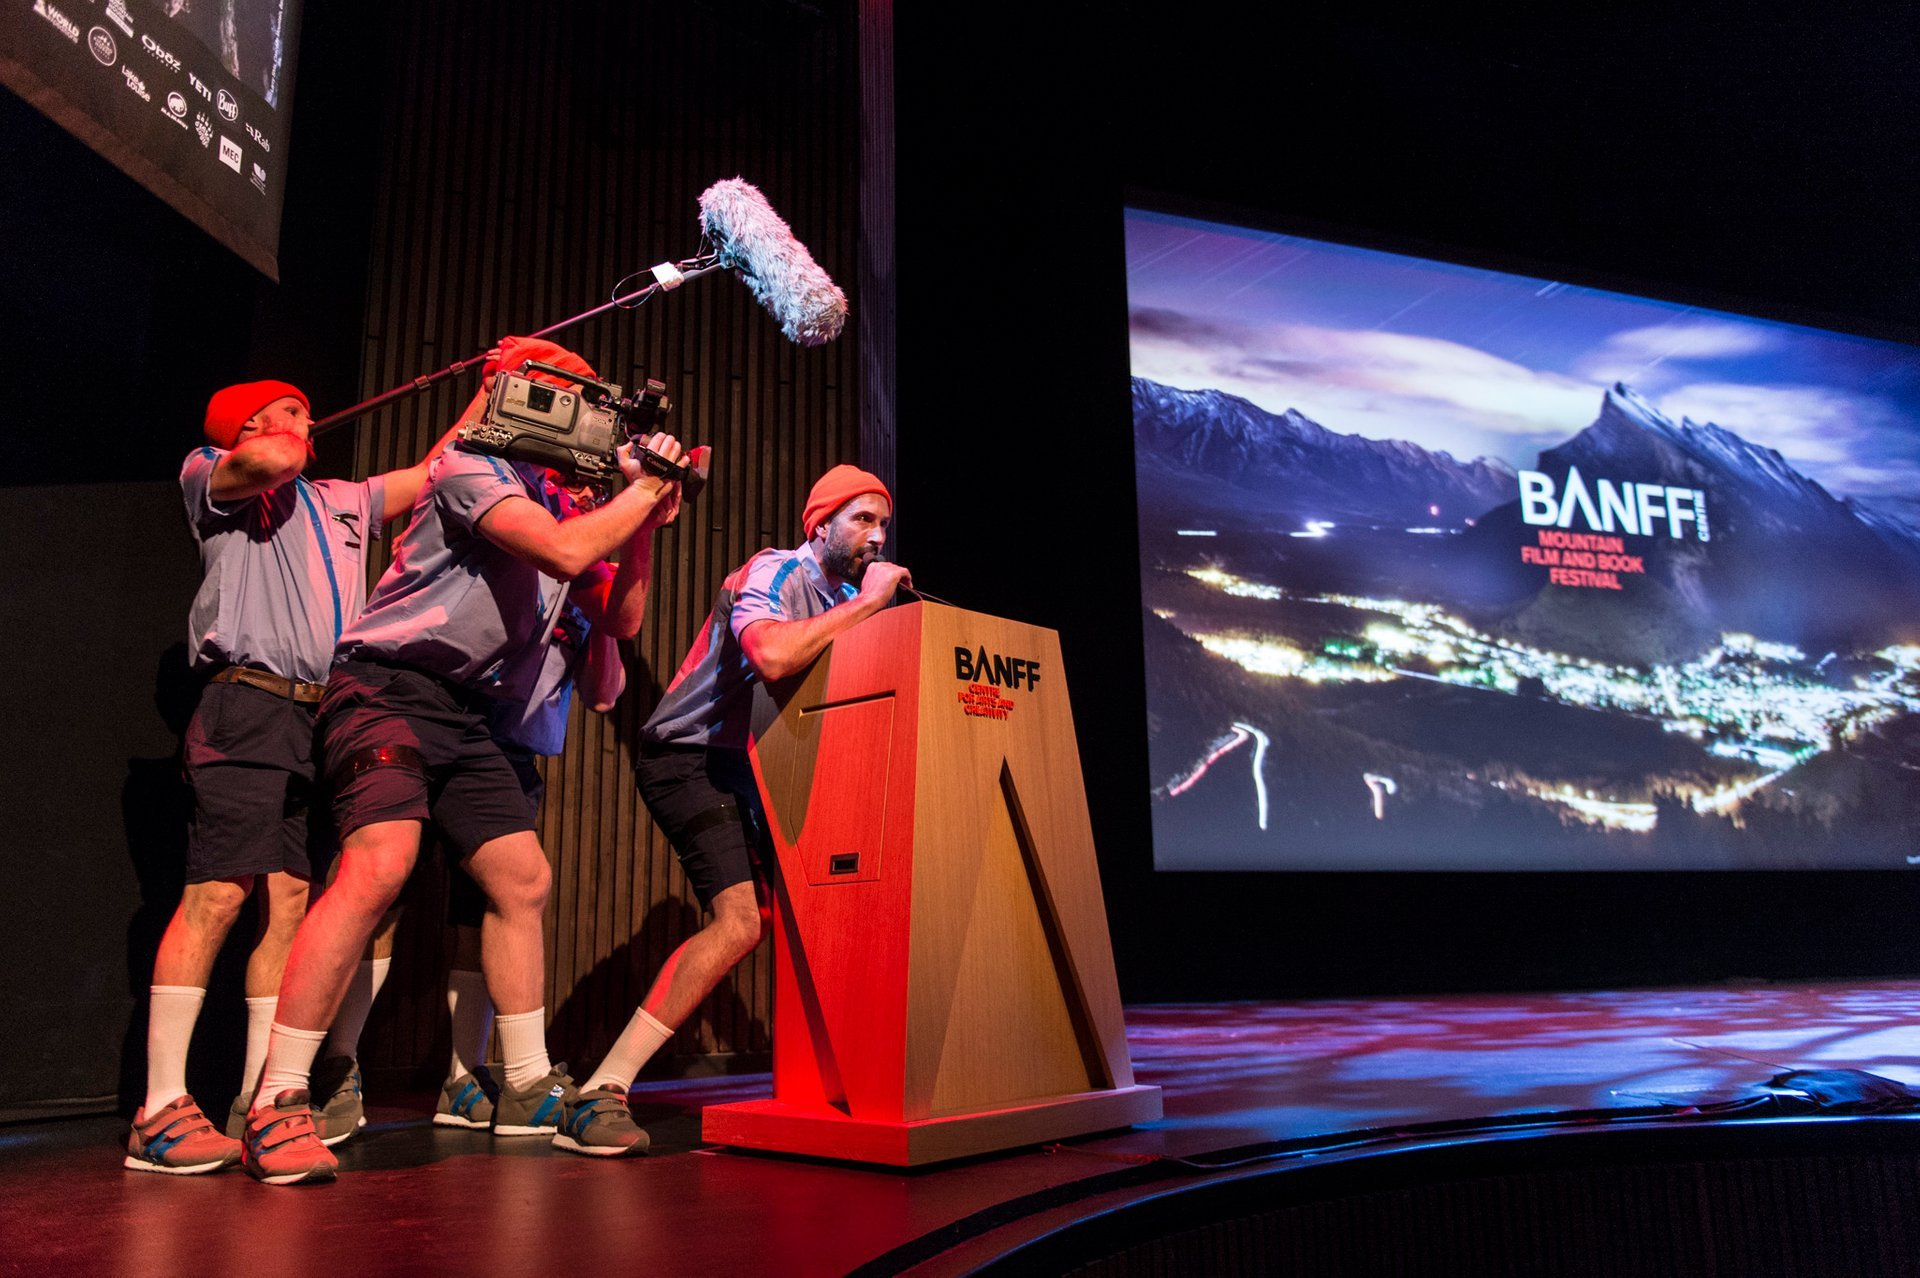 Best time for Banff Centre Mountain Film and Book Festival in Banff & Jasper National Parks 2019